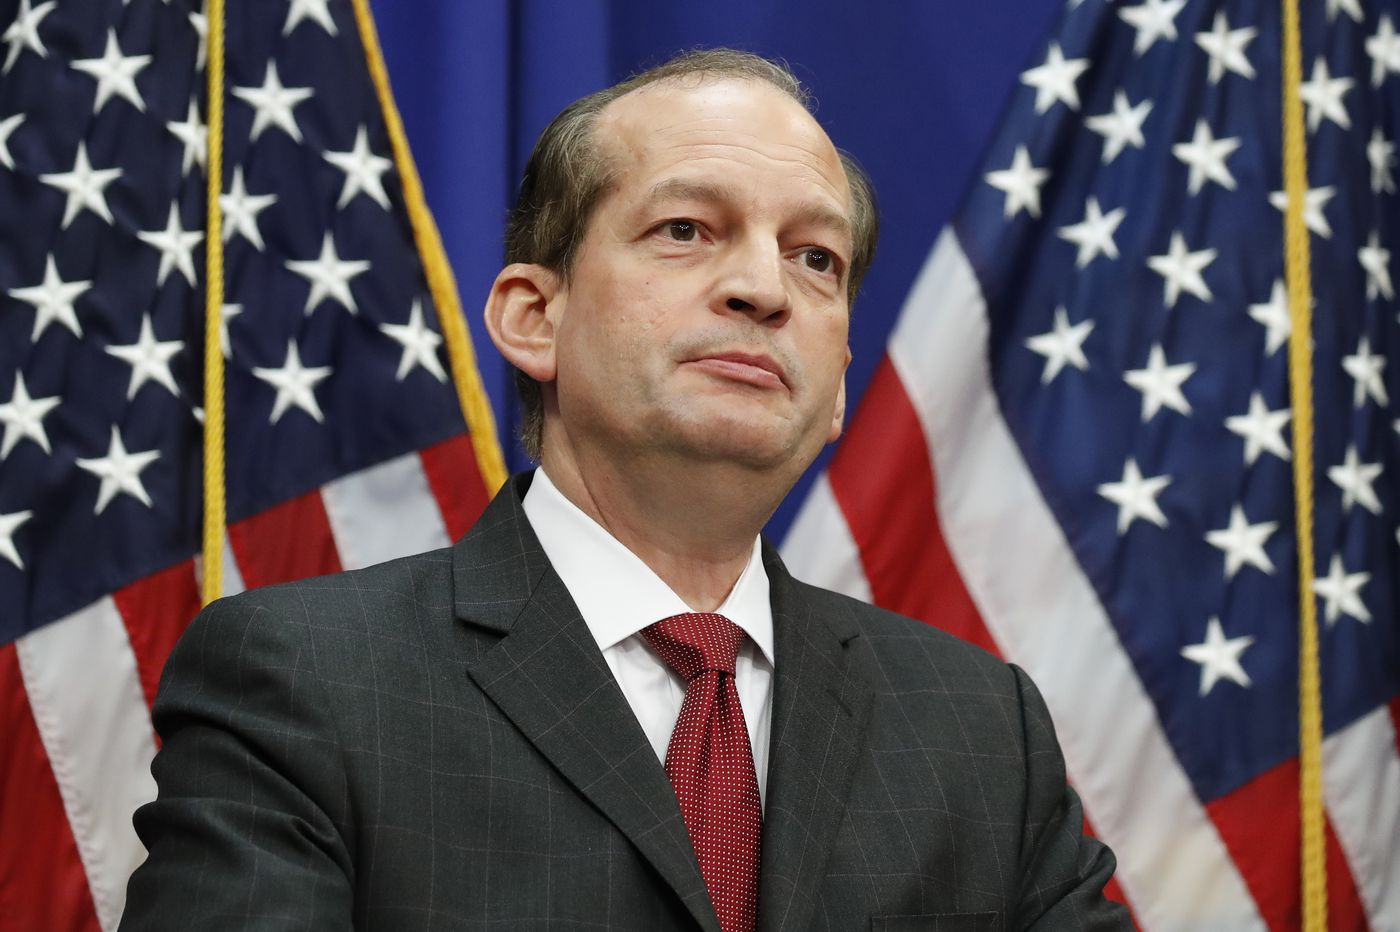 Alex Acosta resigns: An explainer on the Jeffrey Epstein case and how the labor secretary is connected